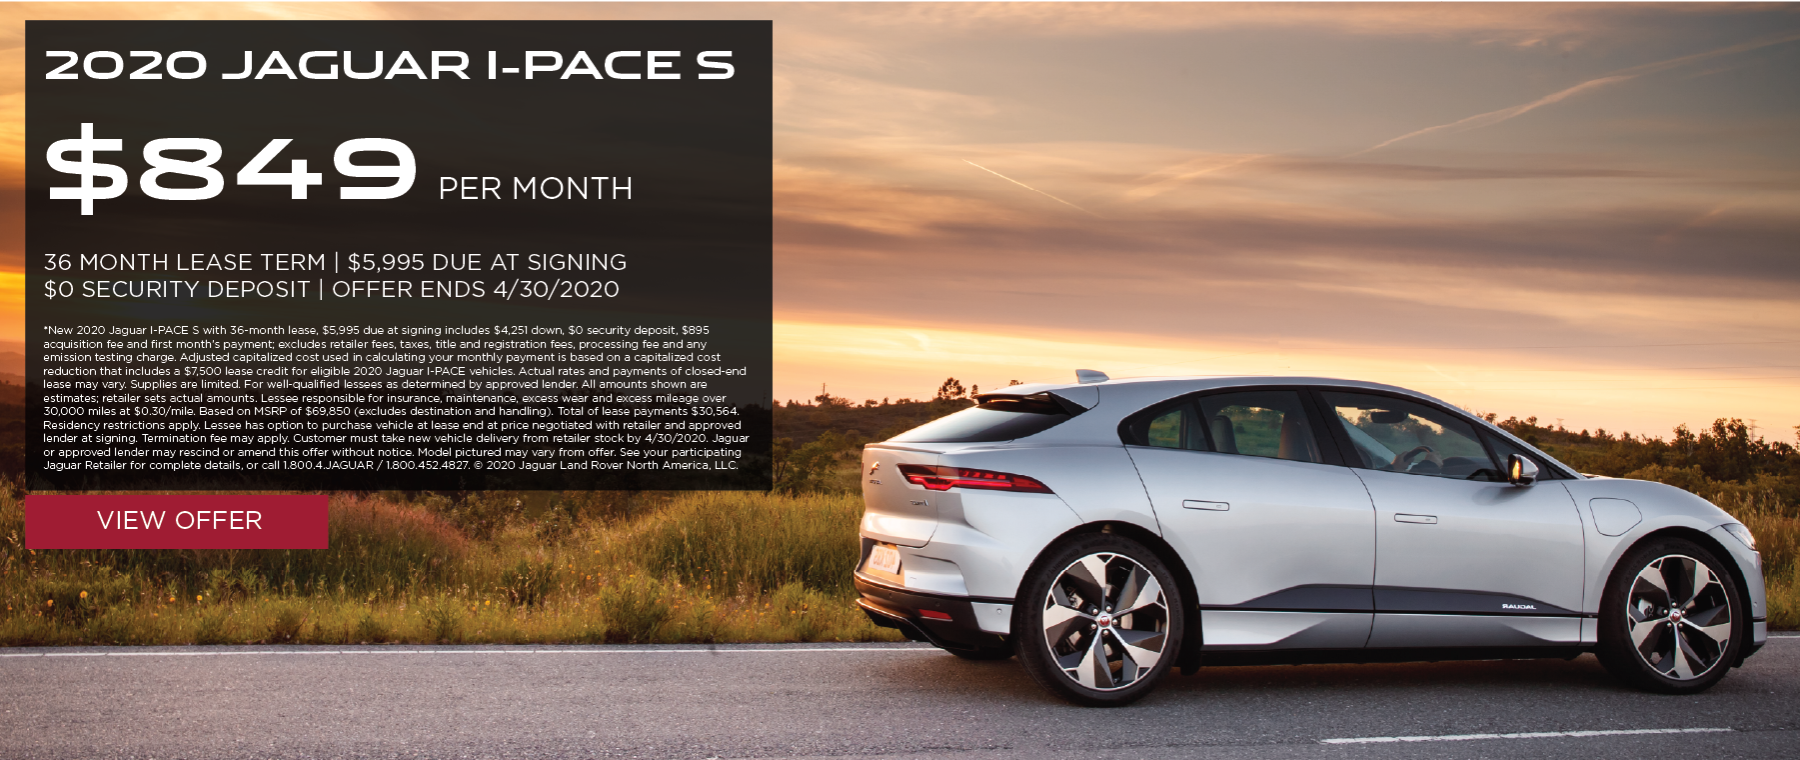 2020 JAGUAR I-PACE S. $849 PER MONTH. 36 MONTH LEASE TERM. $5,995 CASH DUE AT SIGNING. $0 SECURITY DEPOSIT. 10,000 MILES PER YEAR. OFFER ENDS 4/30/2020.